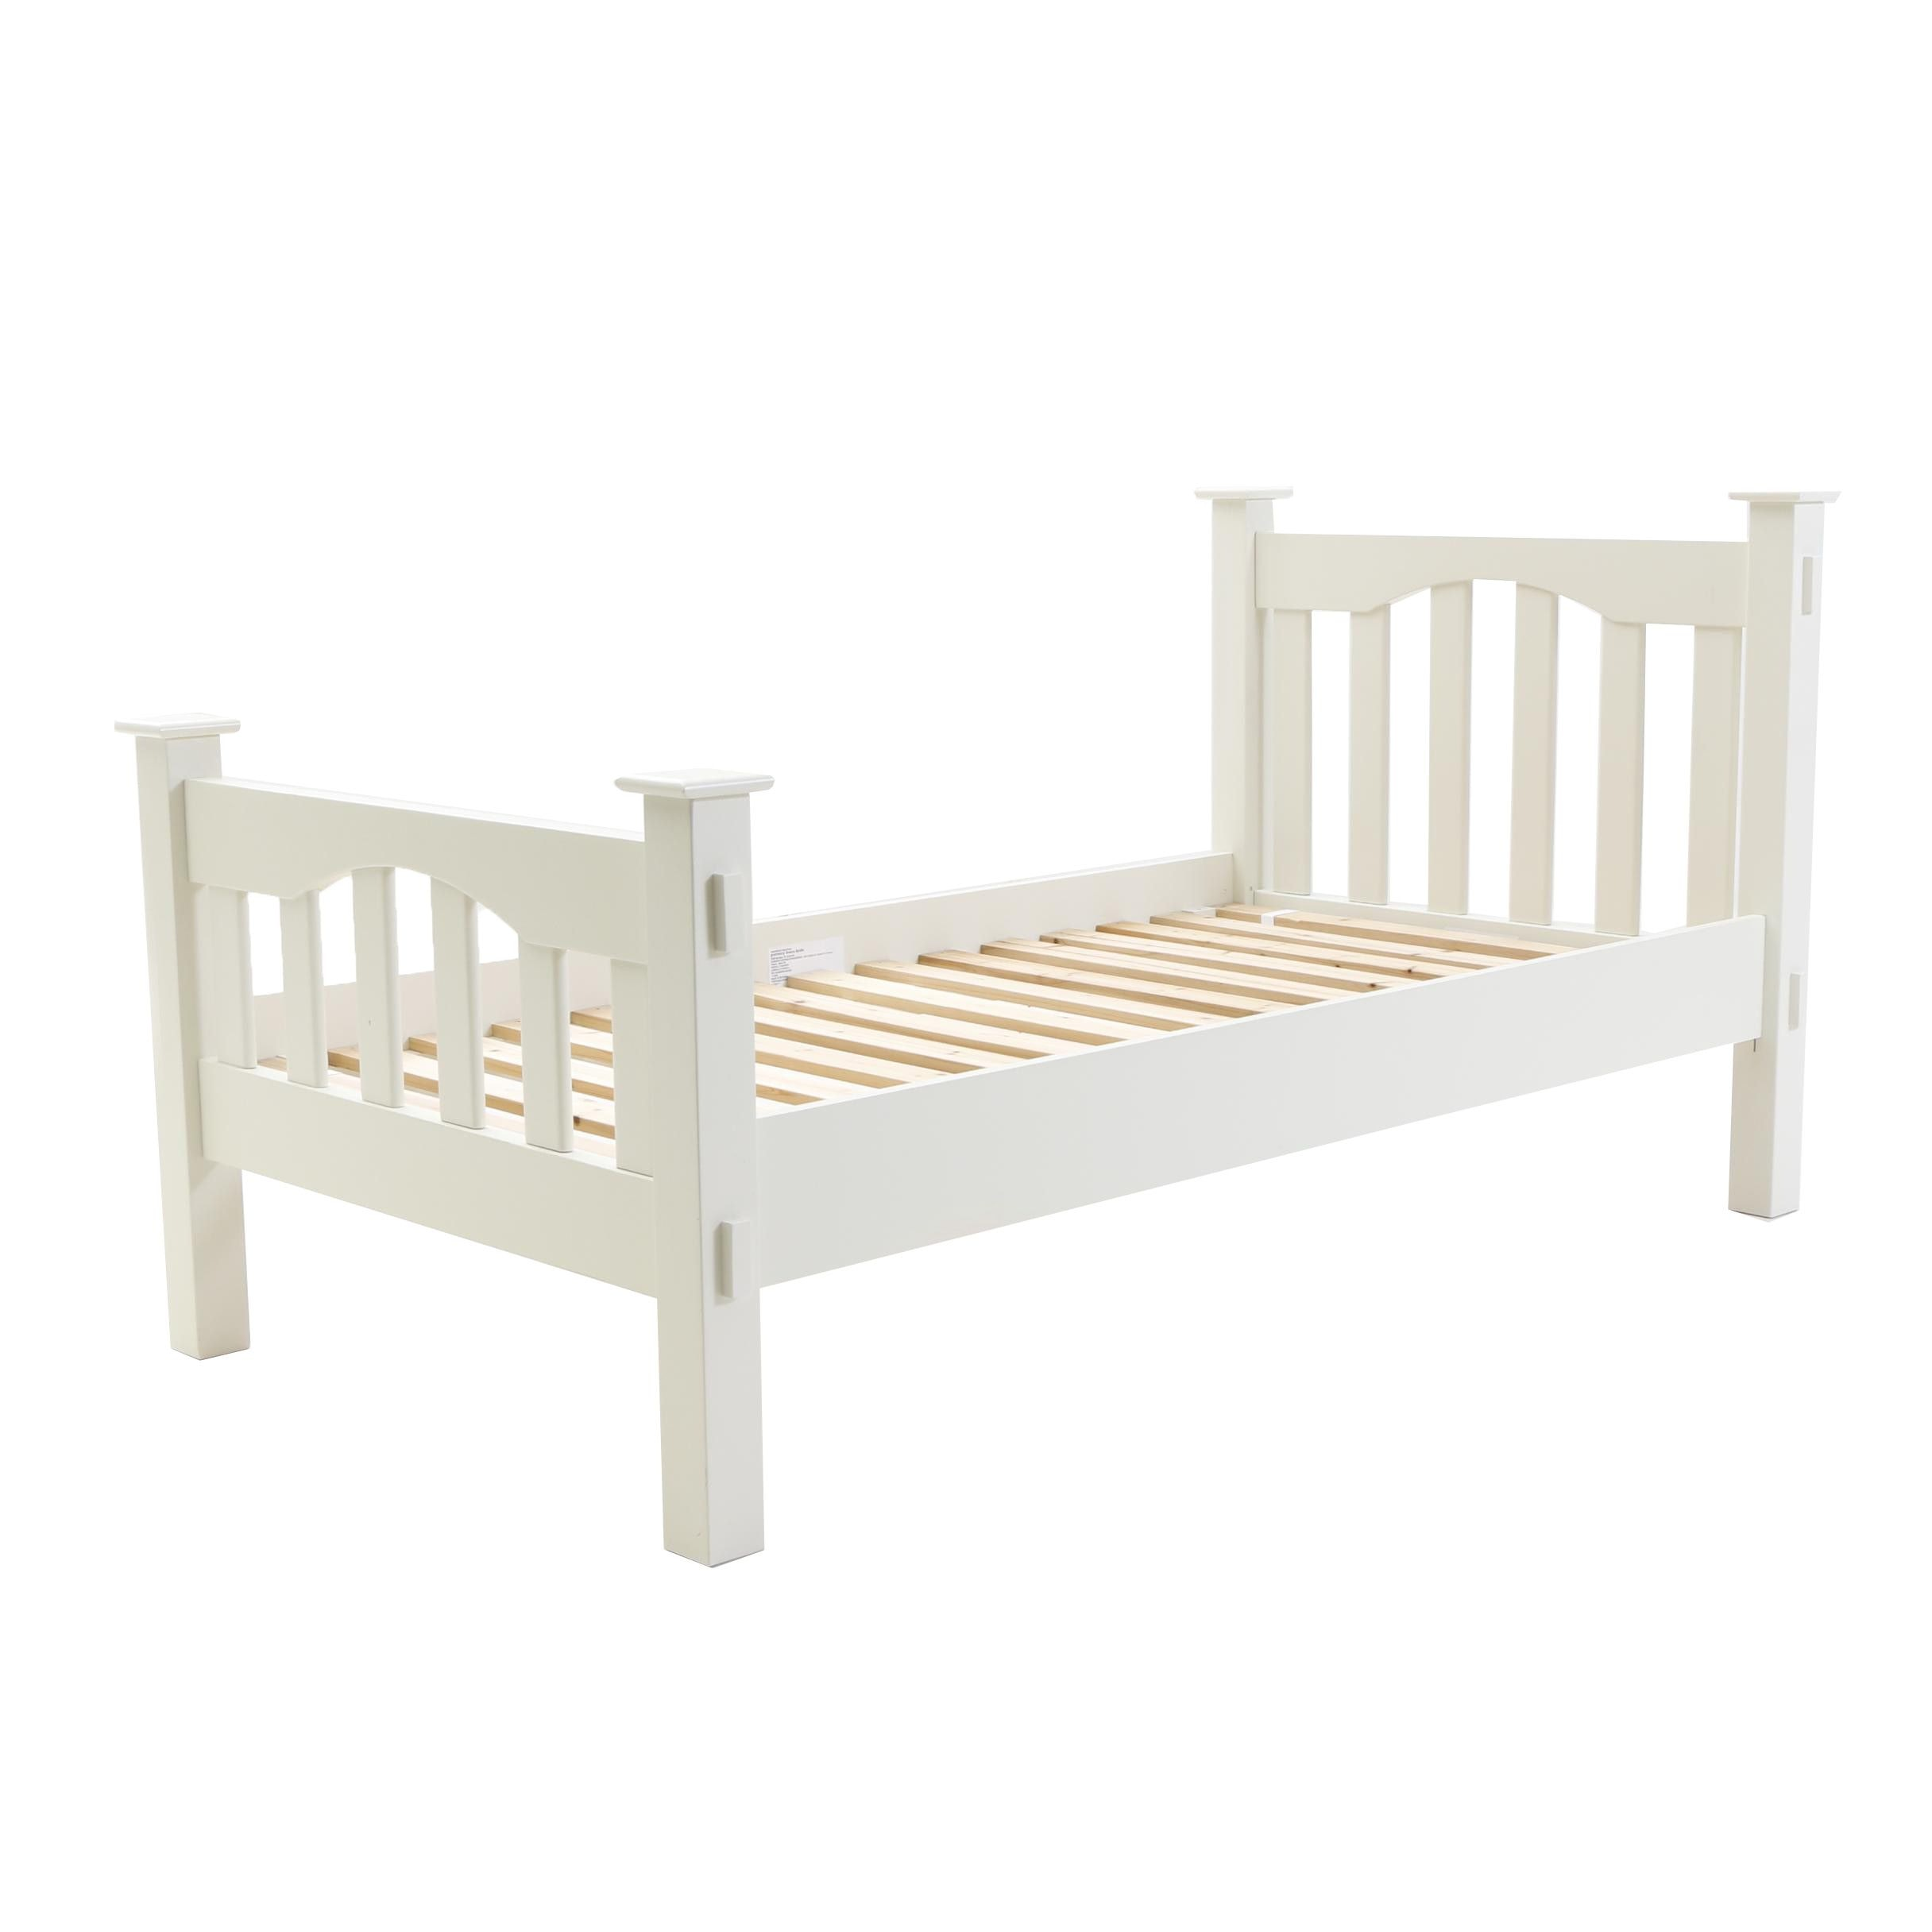 "Pottery Barn ""Kendall"" Twin Bed in White"